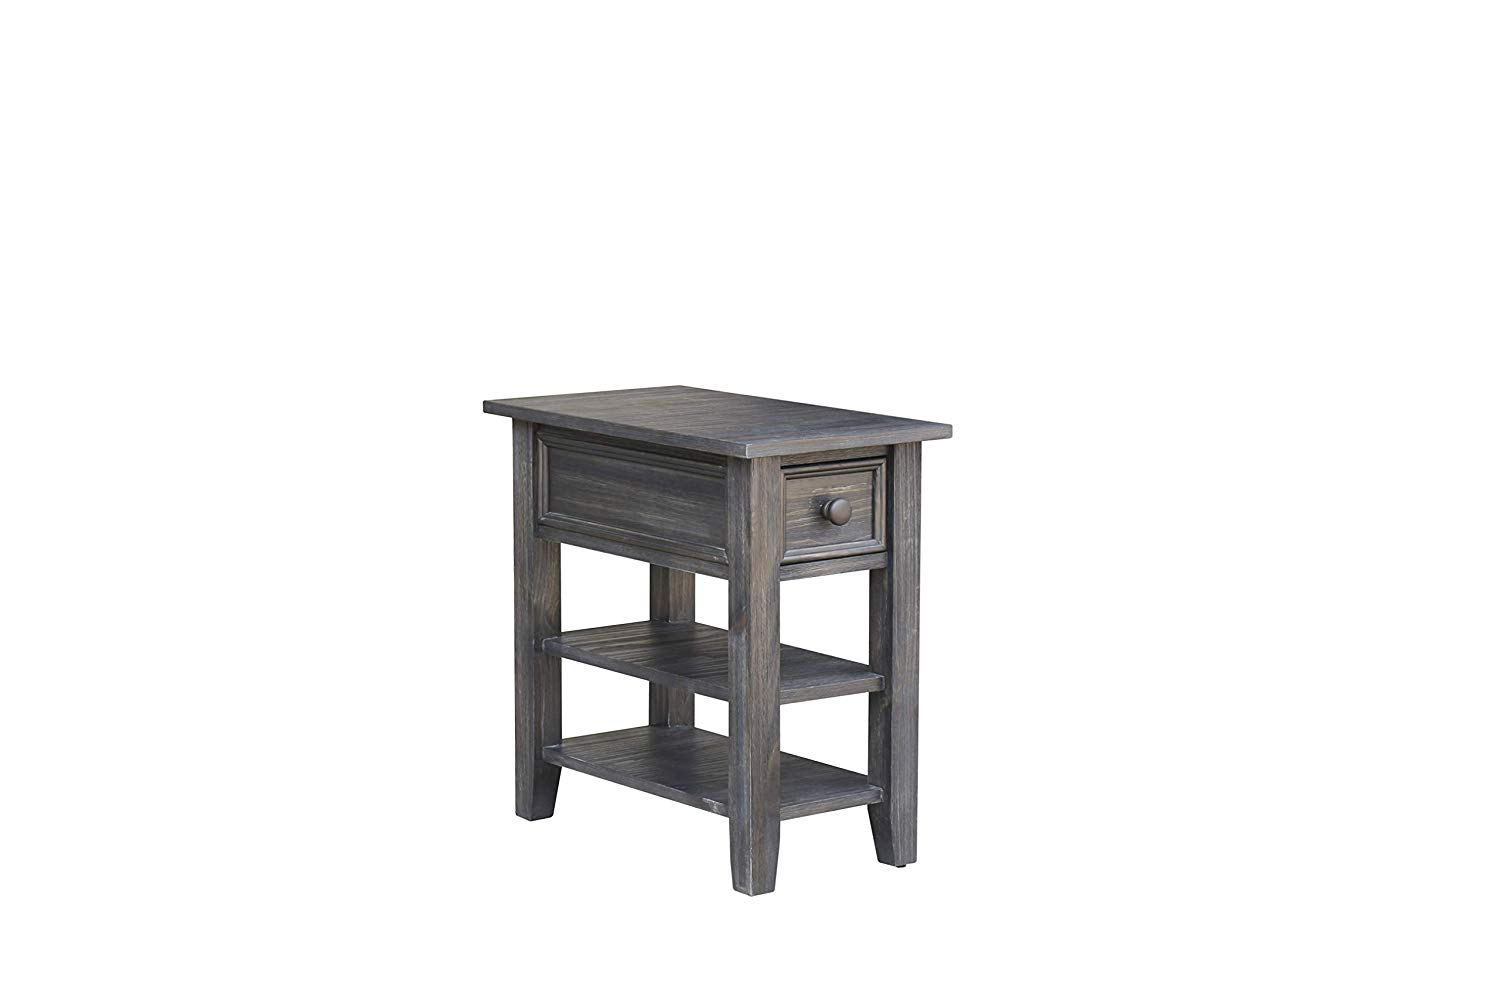 cottage creek new haven chair side end table burnt ash pql tier accent target kitchen dining monarch mirrored media cabinet nautical ture frames night lamp wall tables for living